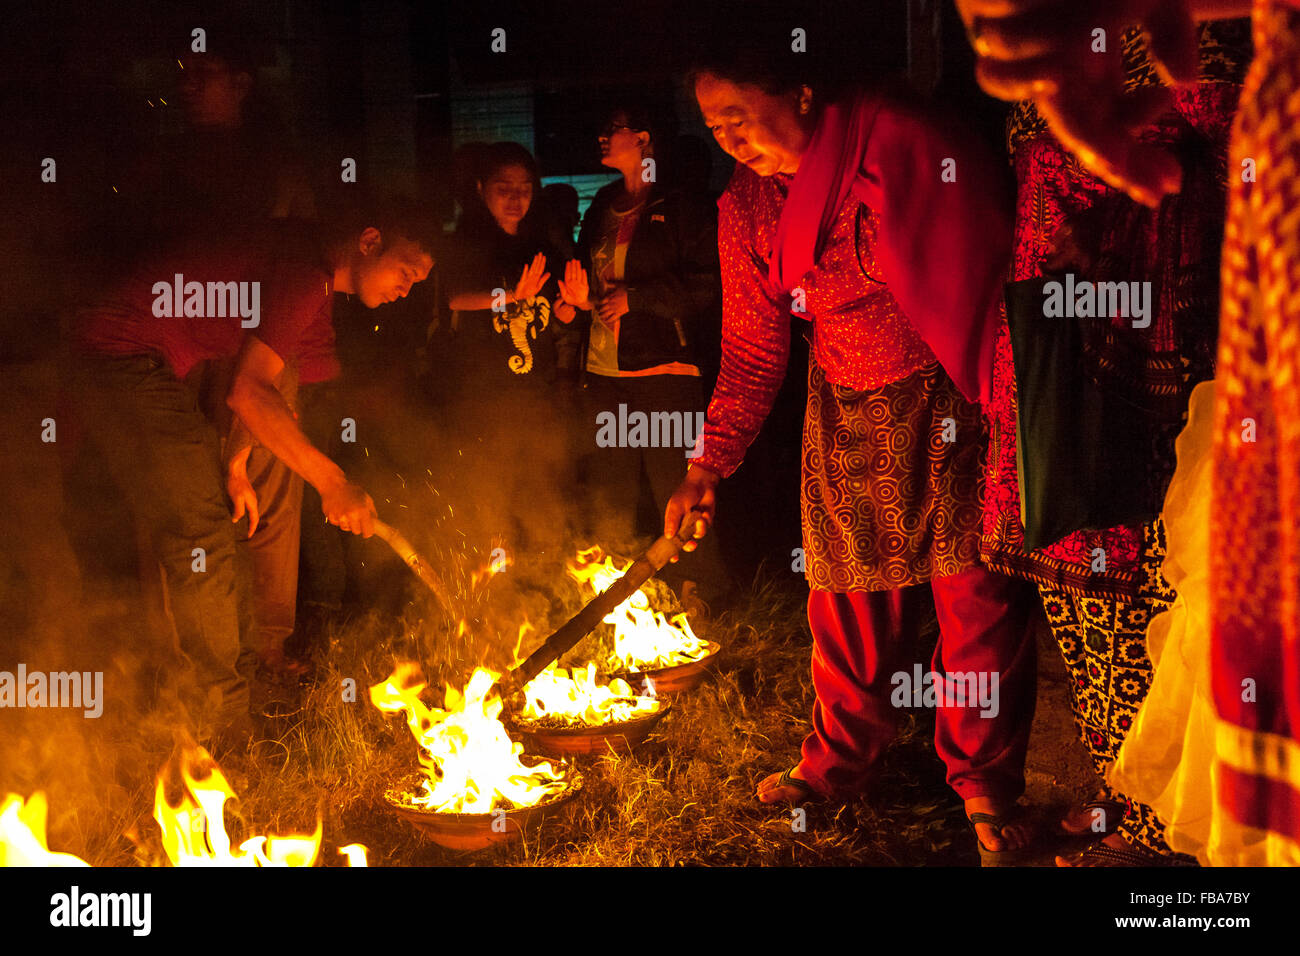 Worshipers stoke small fires during the Kumāri Jātrā festival in Kathmandu - Stock Image